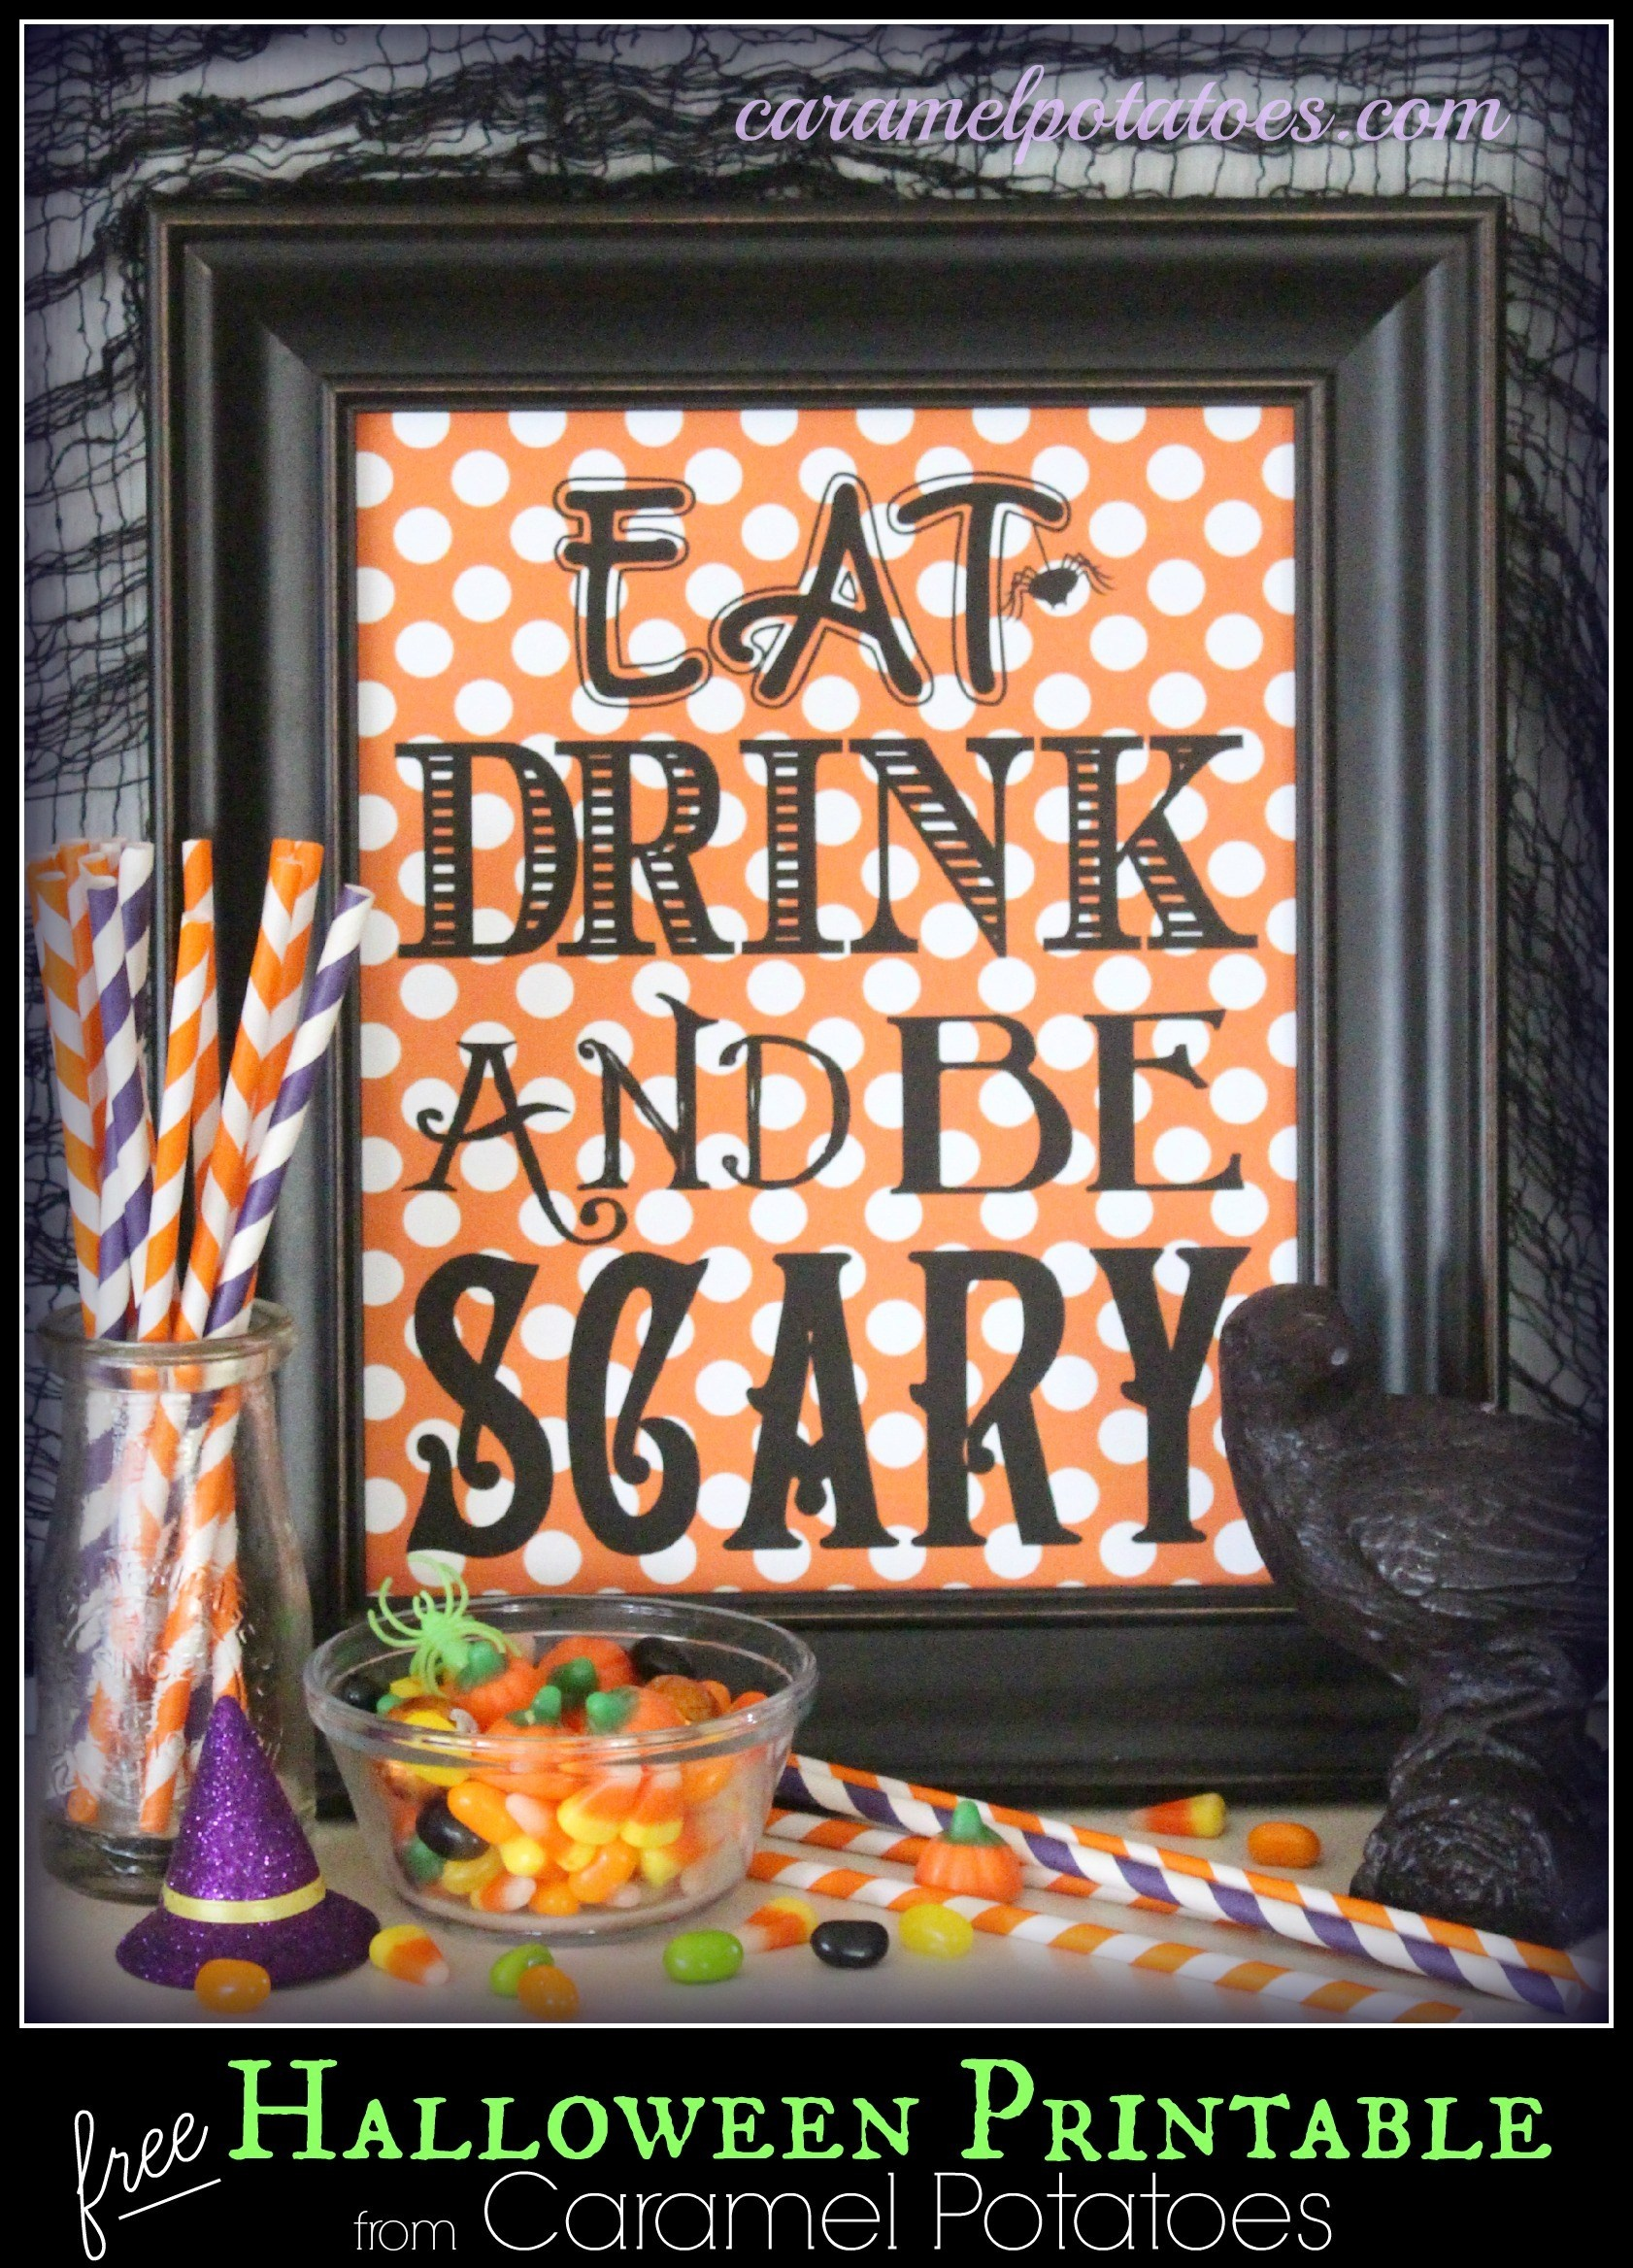 Caramel Potatoes » Eat Drink And Be Scary {Free Printable} - Eat Drink And Be Scary Free Printable